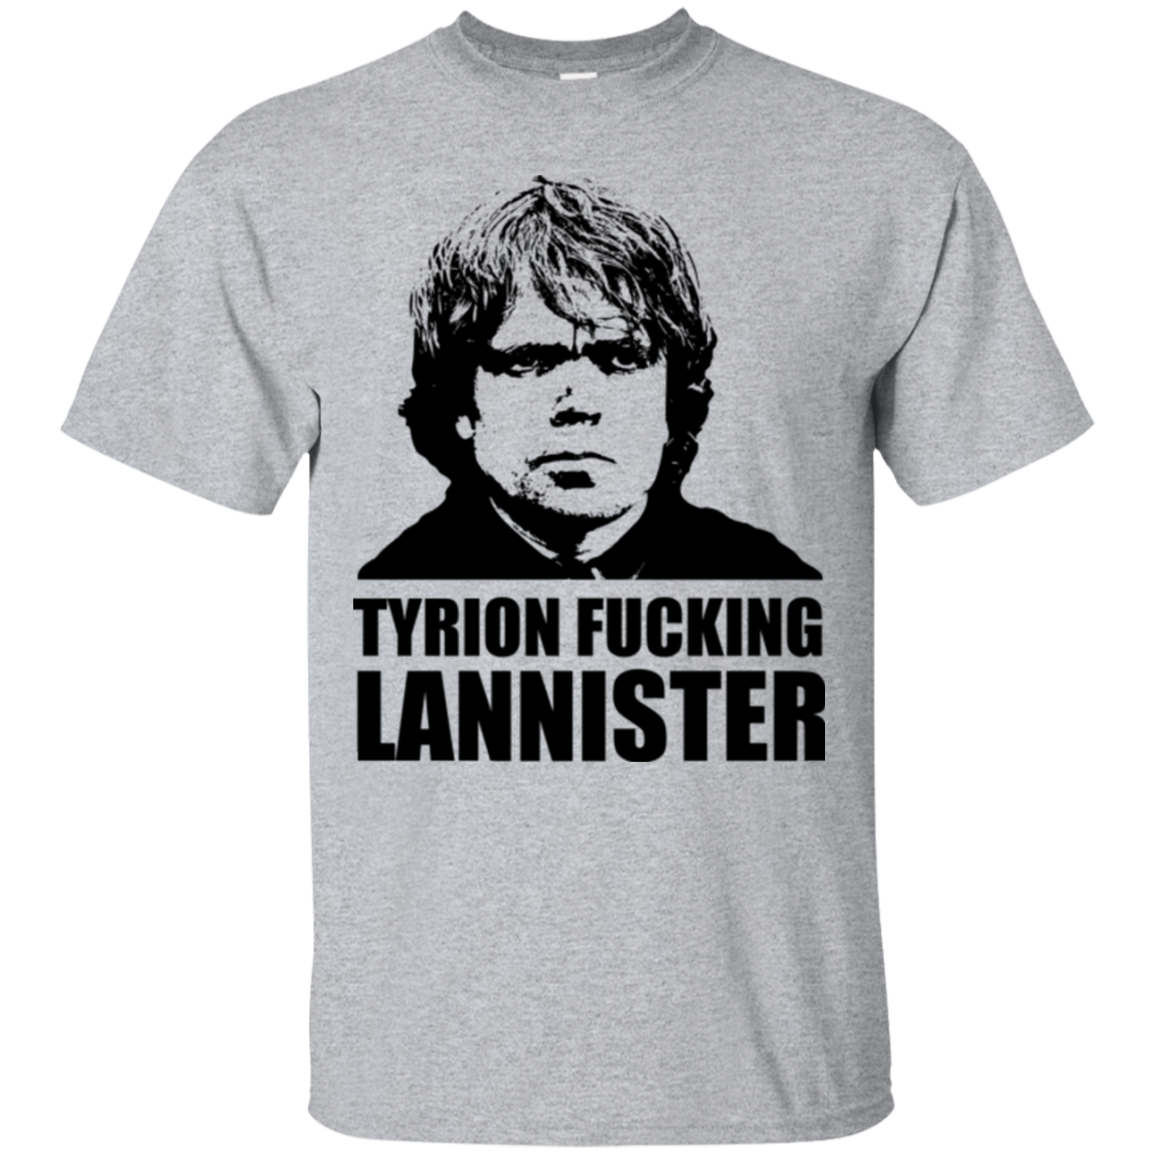 b8d99943 Tyrion fucking Lannister T-Shirt – Pop Up Tee